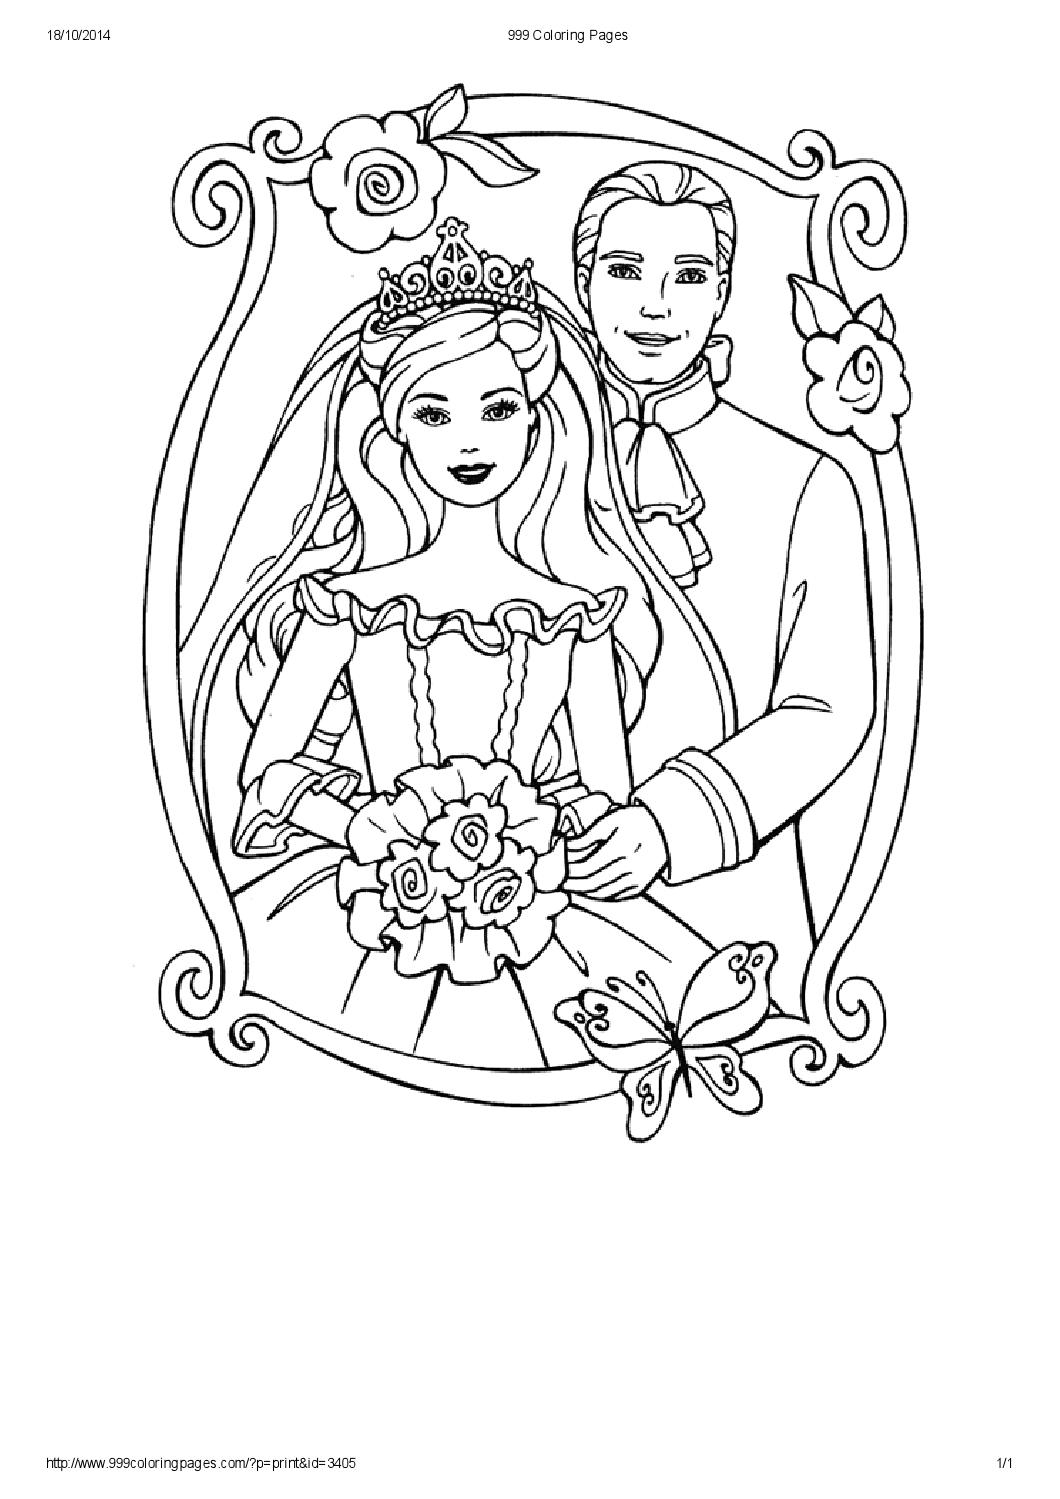 999 coloring pages by larissa moreira issuu for 999 coloring pages